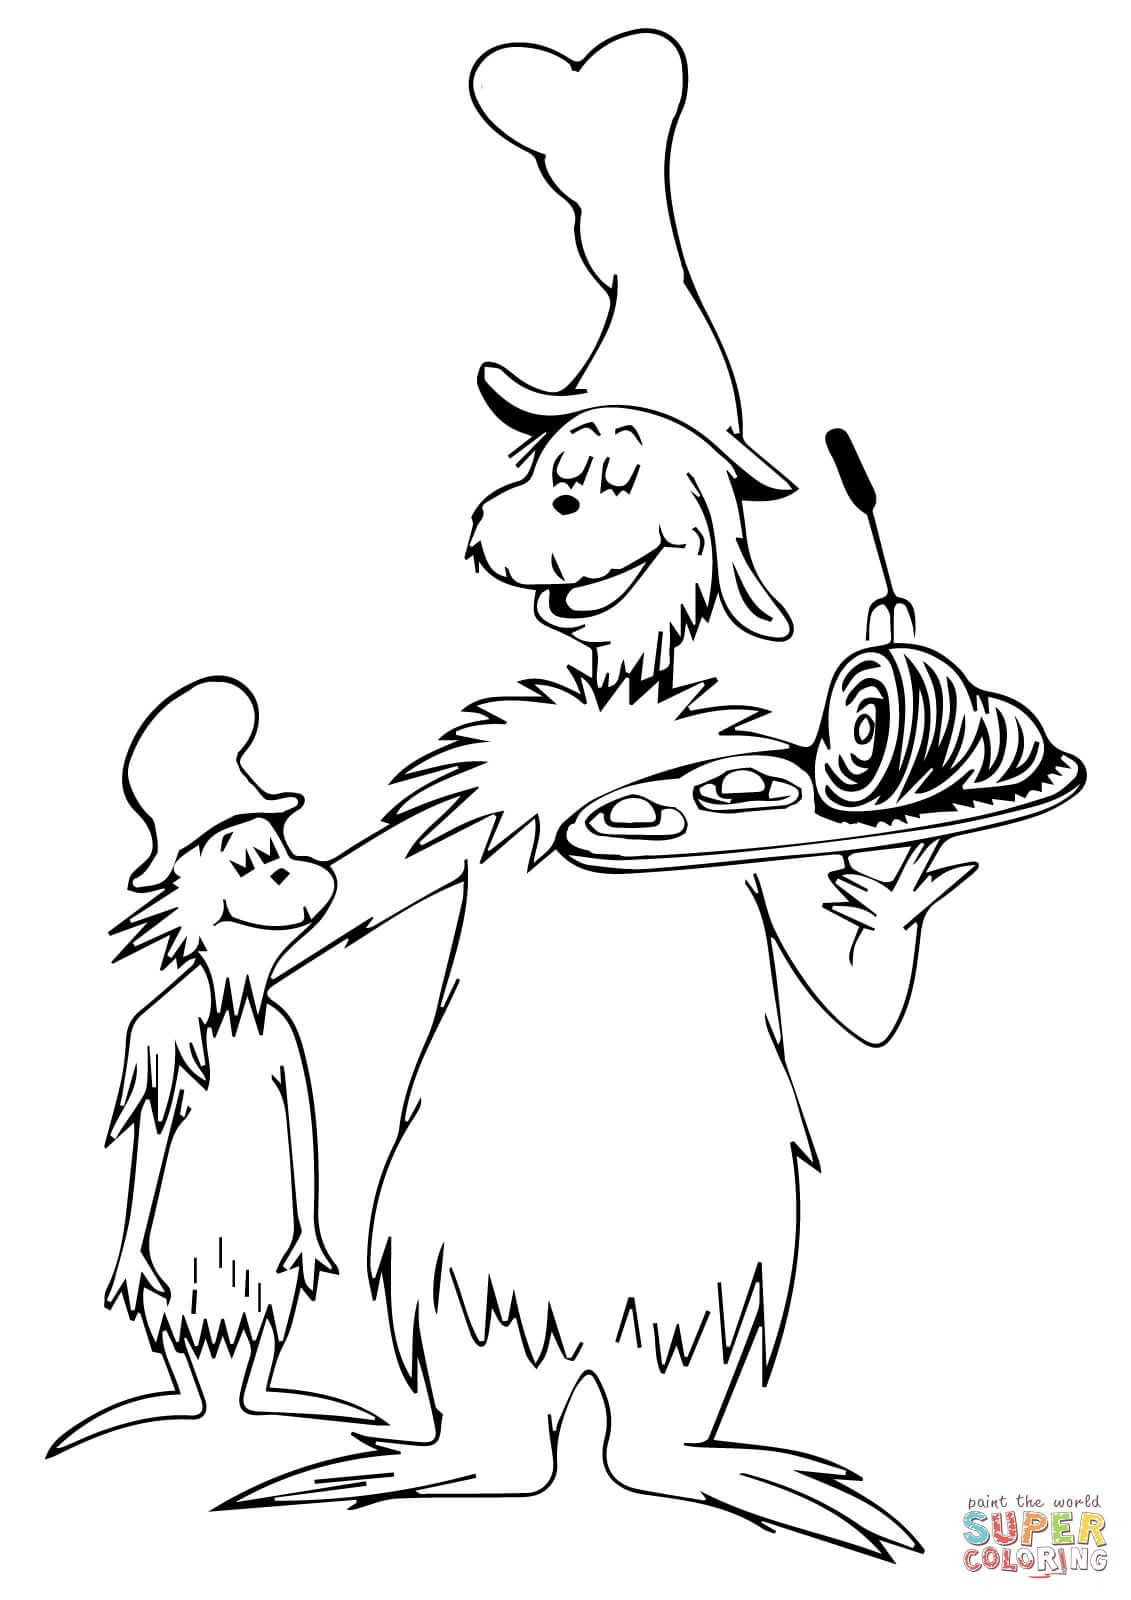 Dr. Seuss Preschool Coloring Sheets  Green eggs and ham coloring page